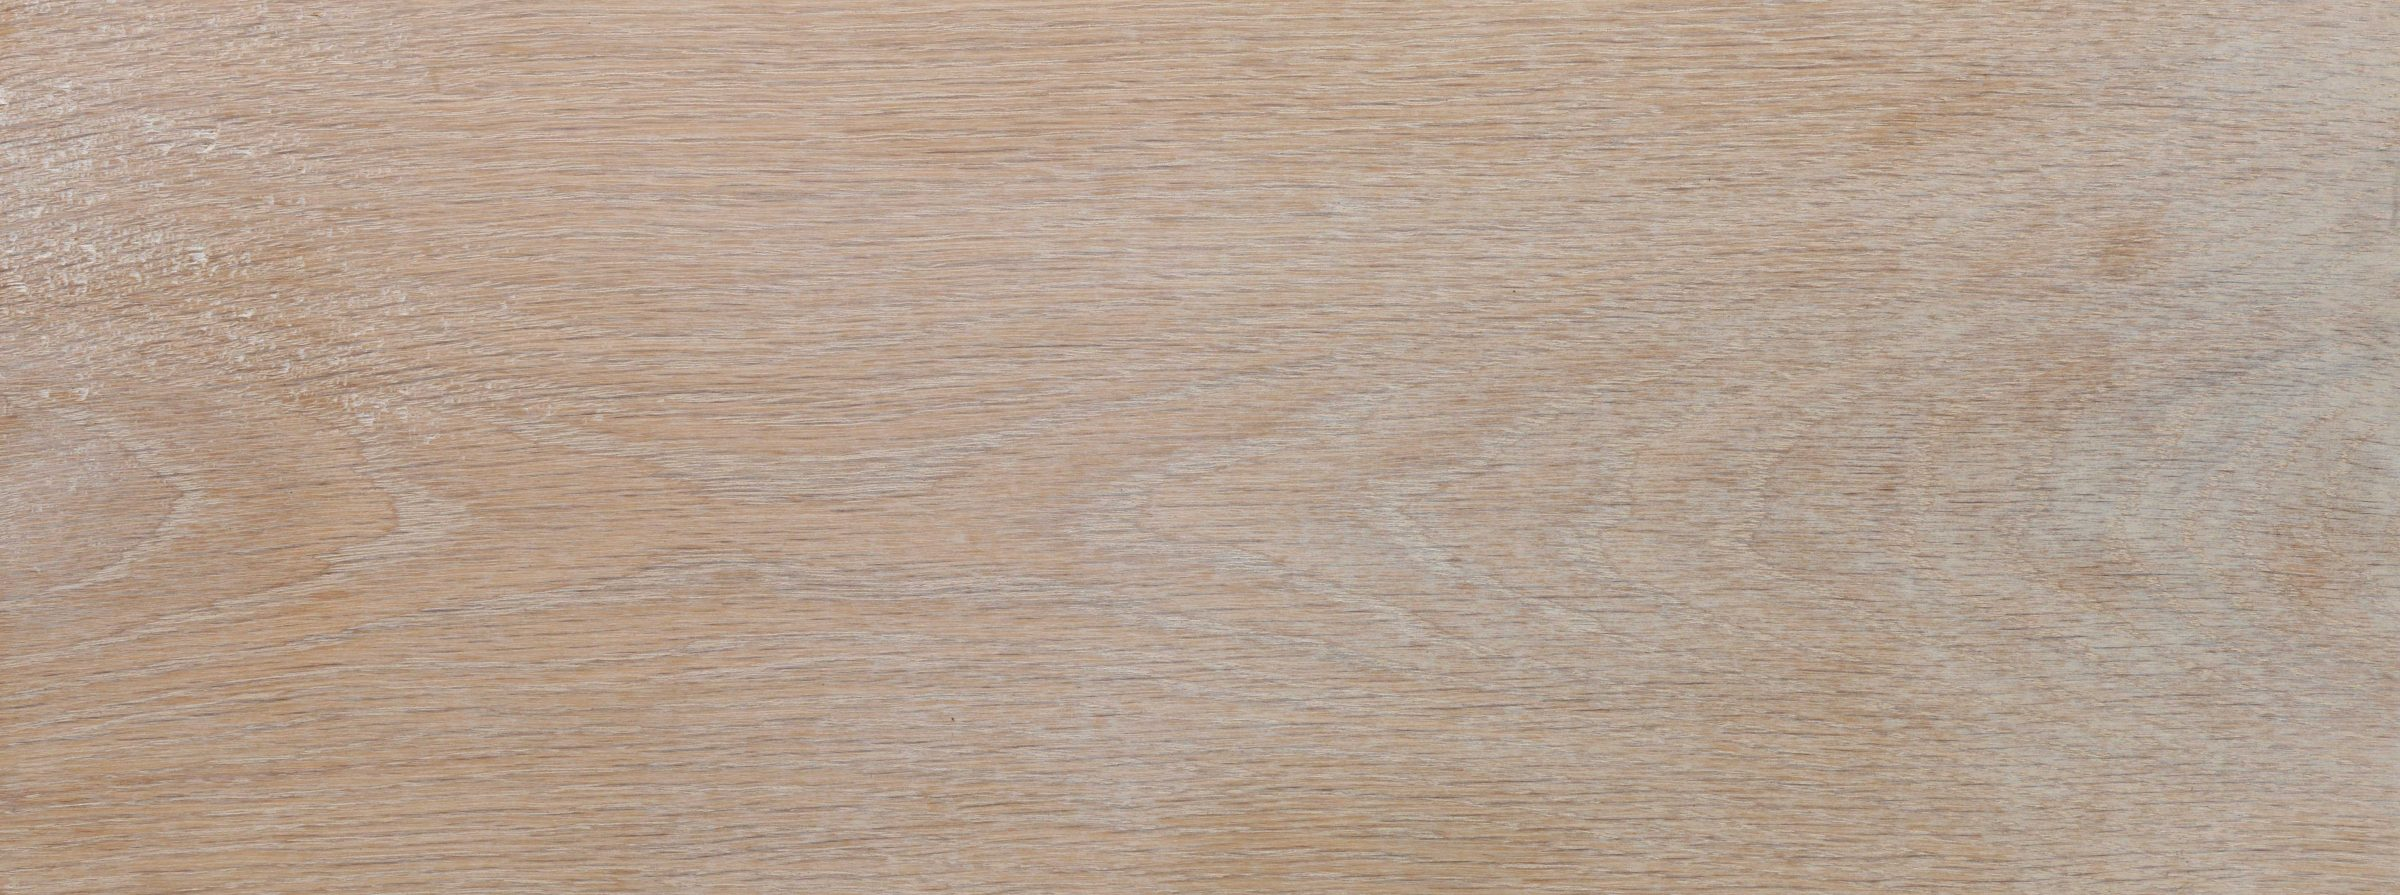 Oak 14mm engineered board, Castle White, 1sqm pack